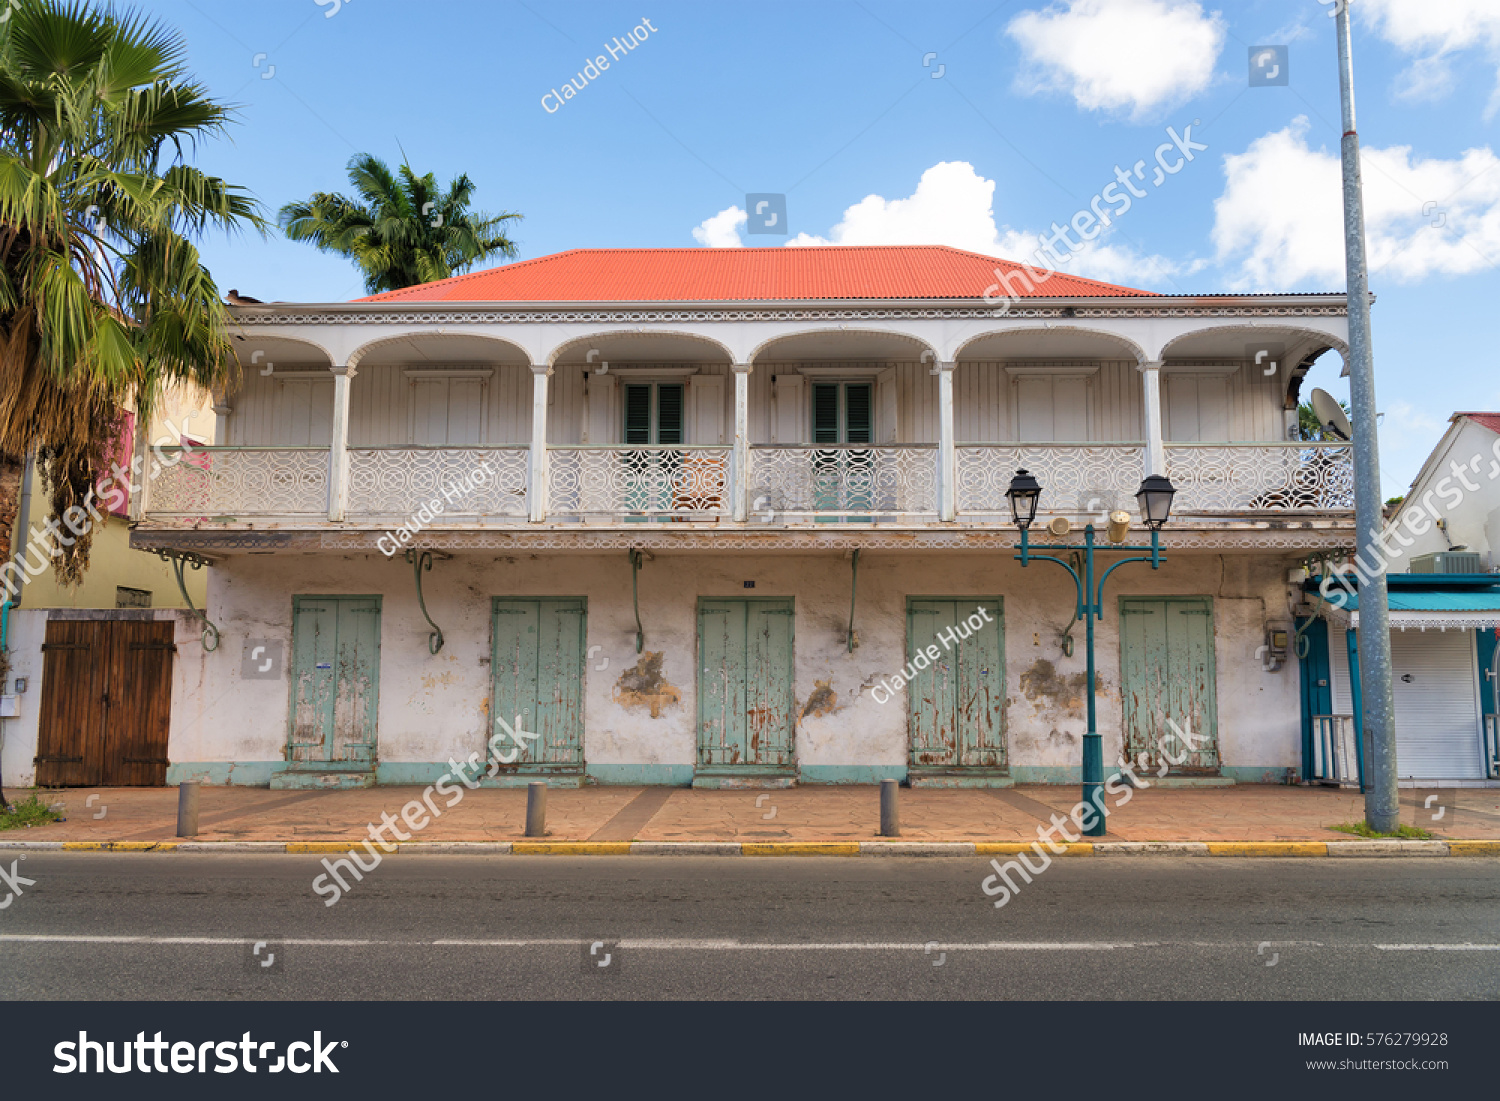 Old grunge building in Philipsburg on the island of St. Maarten in the Caribbean.